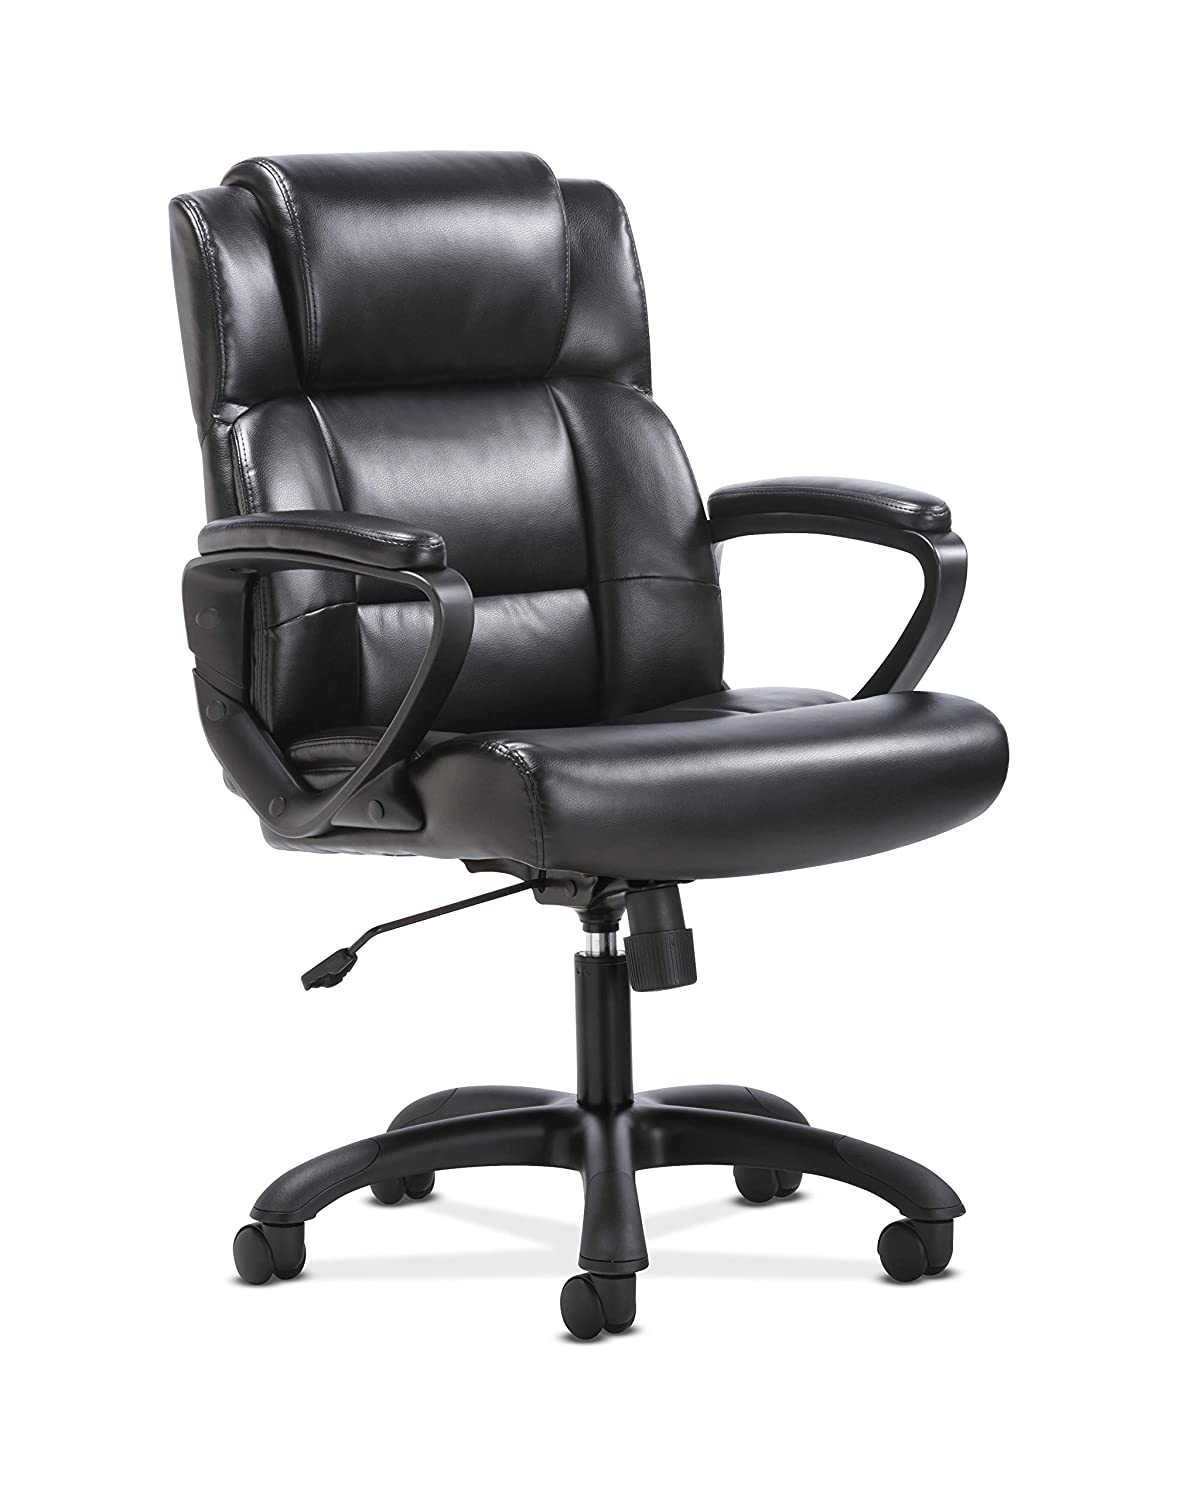 Best rated office chairs for short person